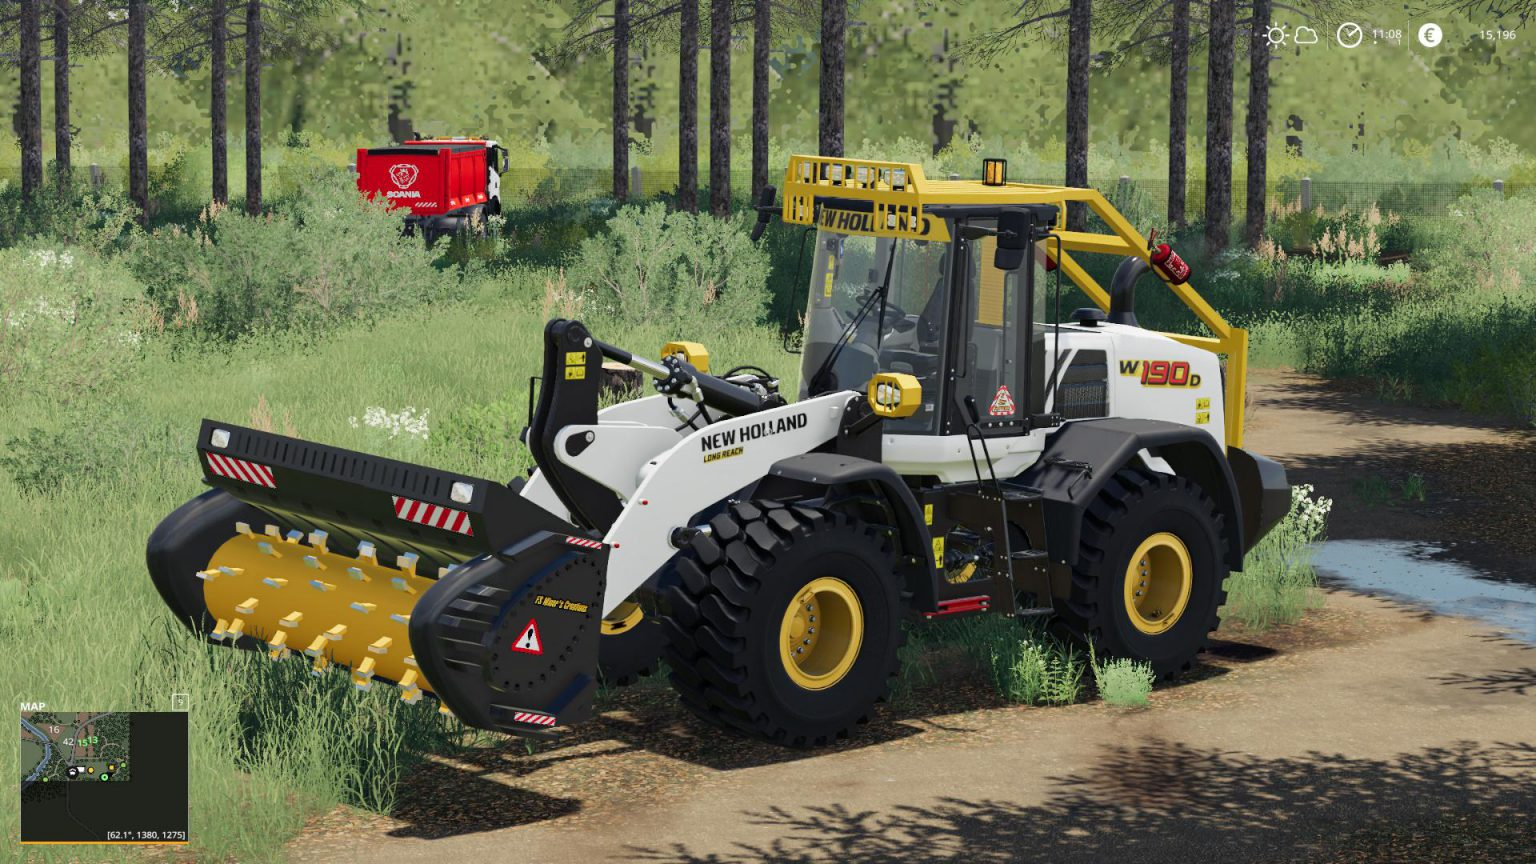 New-Holland-W-190-Forestier-v1.02-1536x8